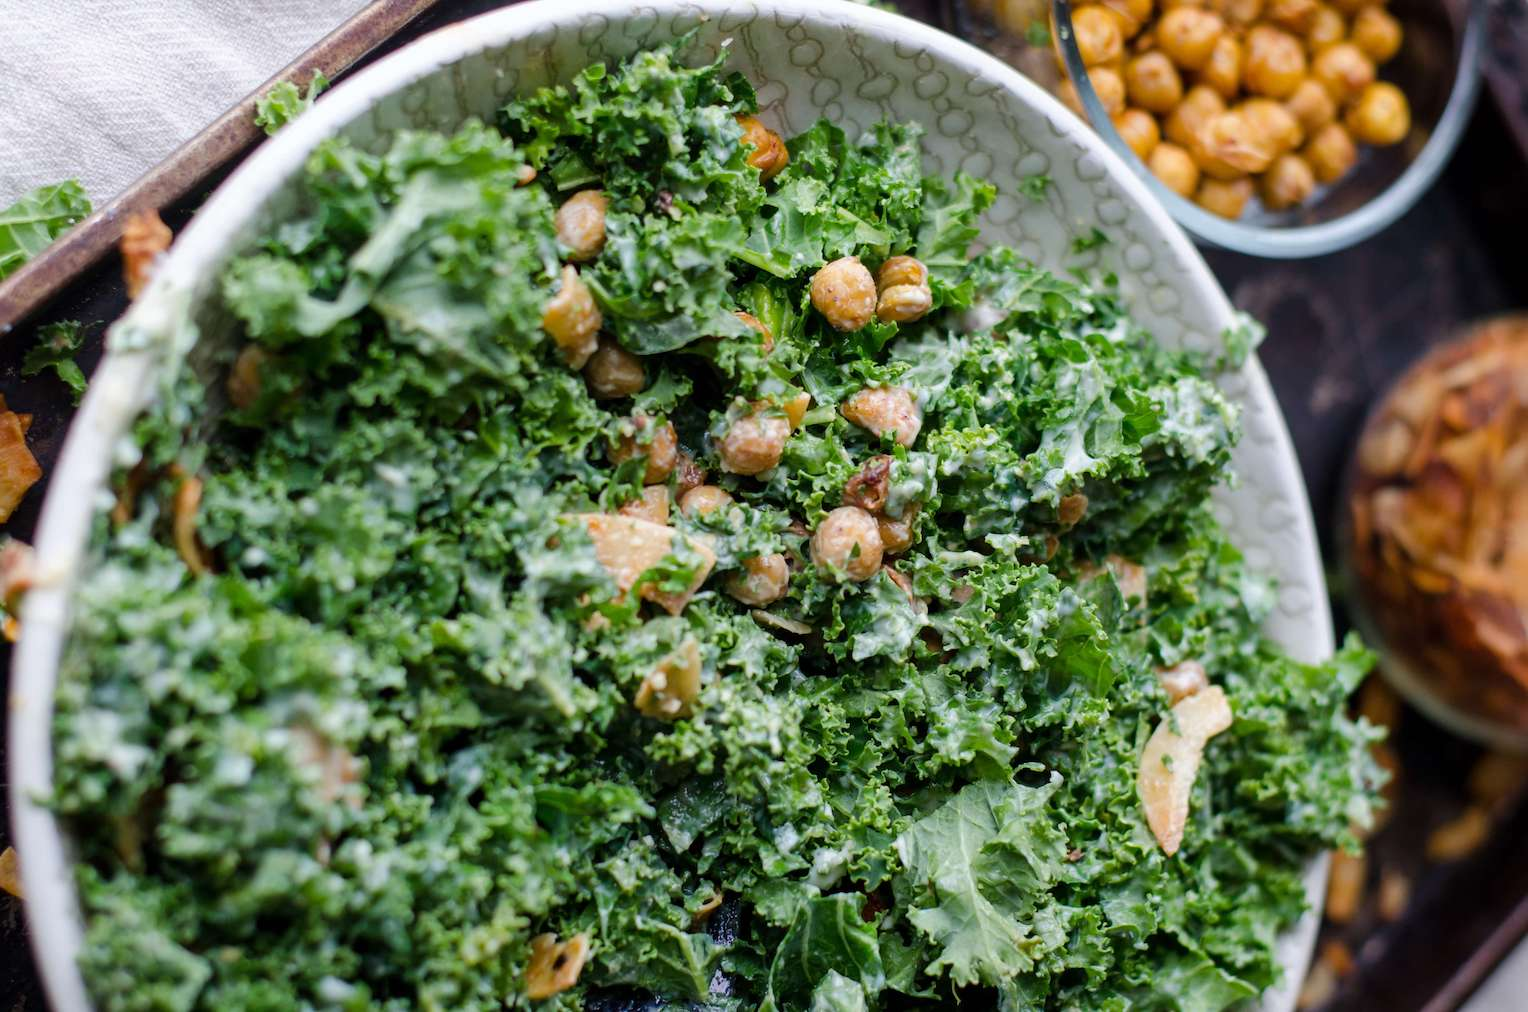 Vegan Diet May Be the Key to Winning the 'War on Cancer', Studies Find